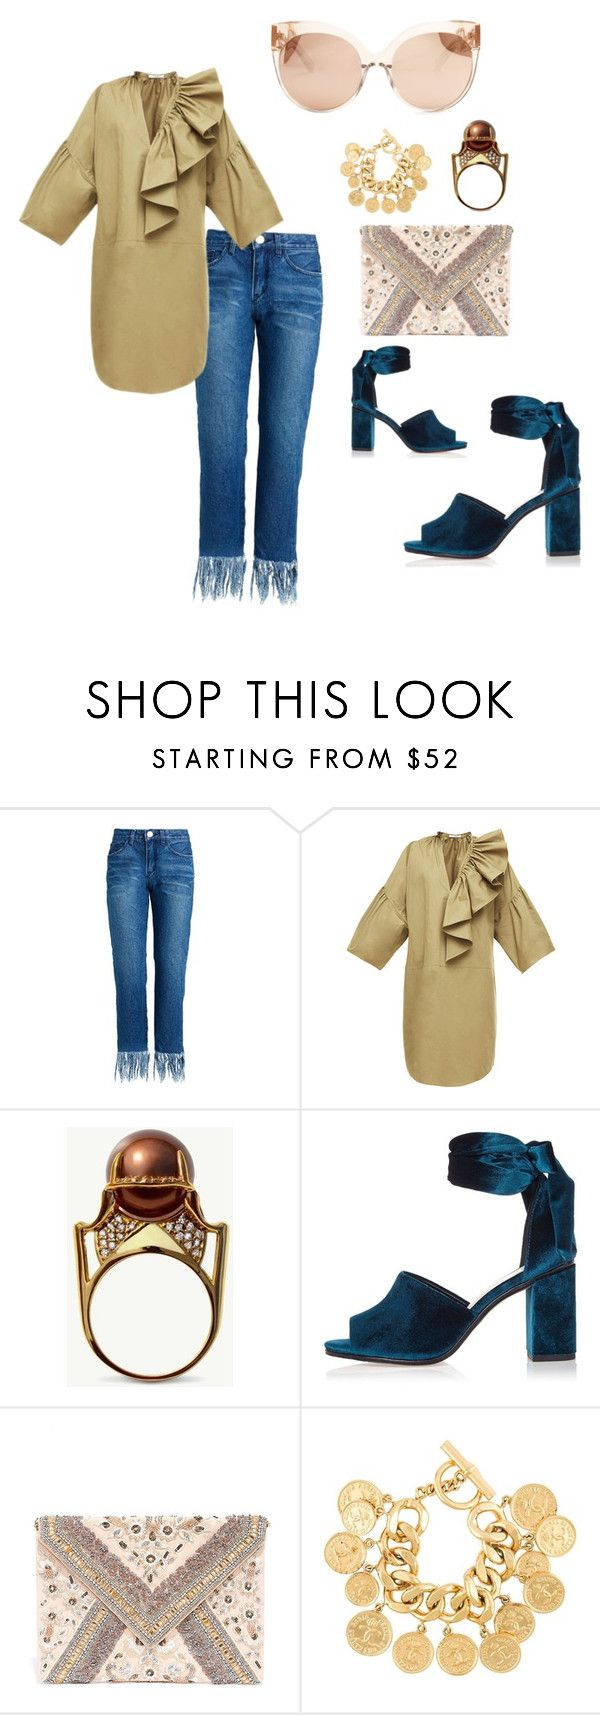 """""""Untitled #884"""" by steflsamour ❤ liked on Polyvore featuring Tome, River Island, LULUS, Chanel and Linda Farrow"""